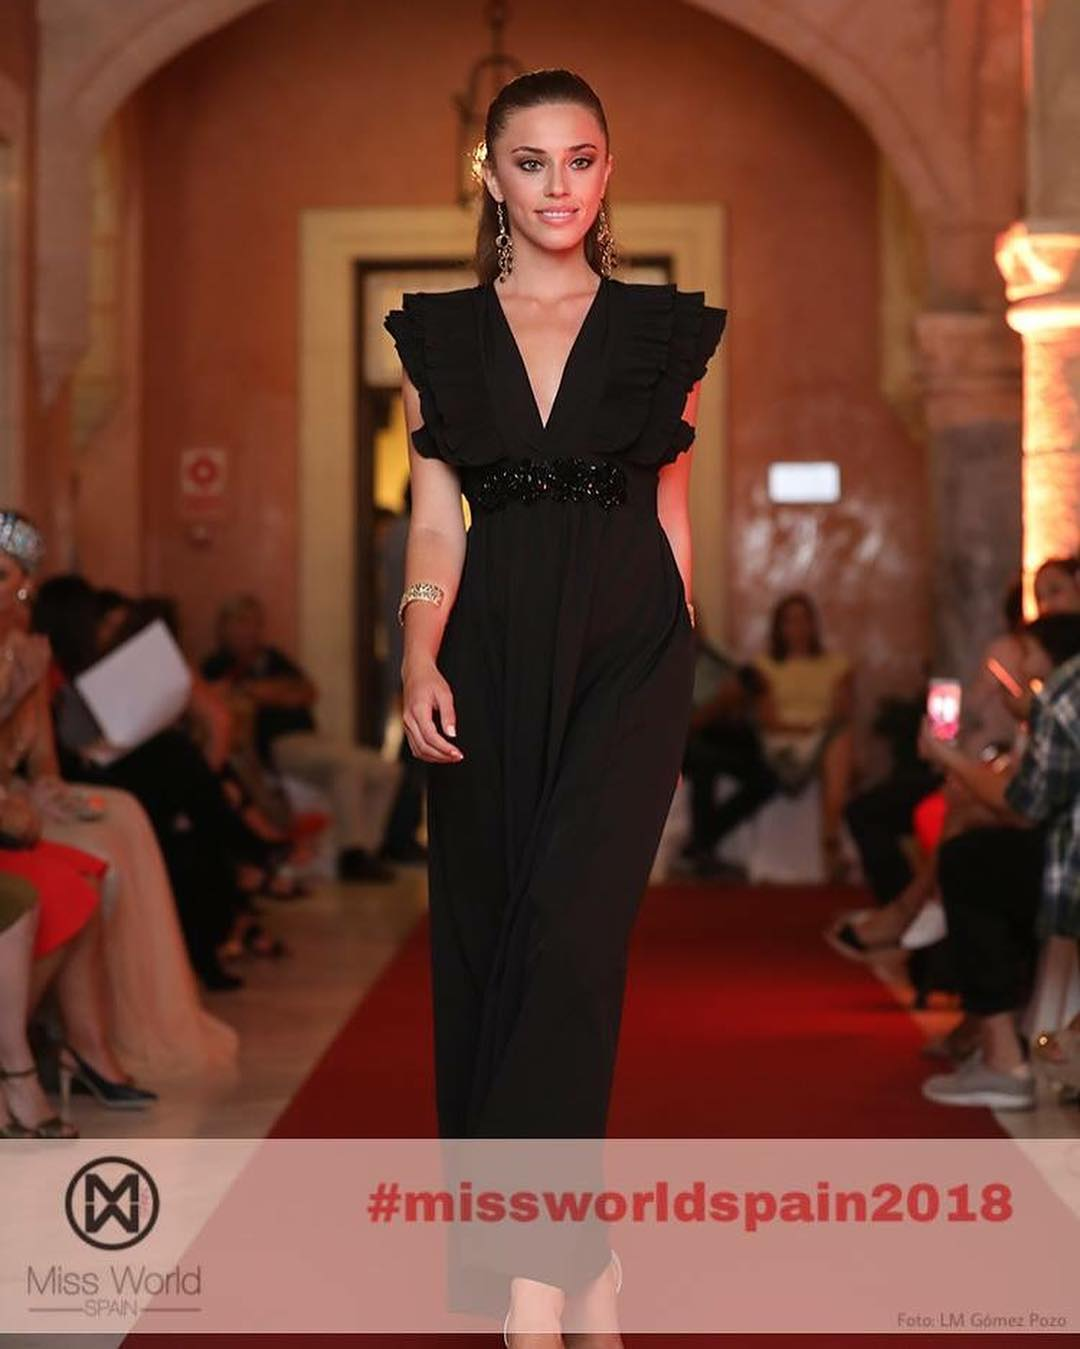 amaia izar leache, miss world spain 2018. - Página 3 40519410